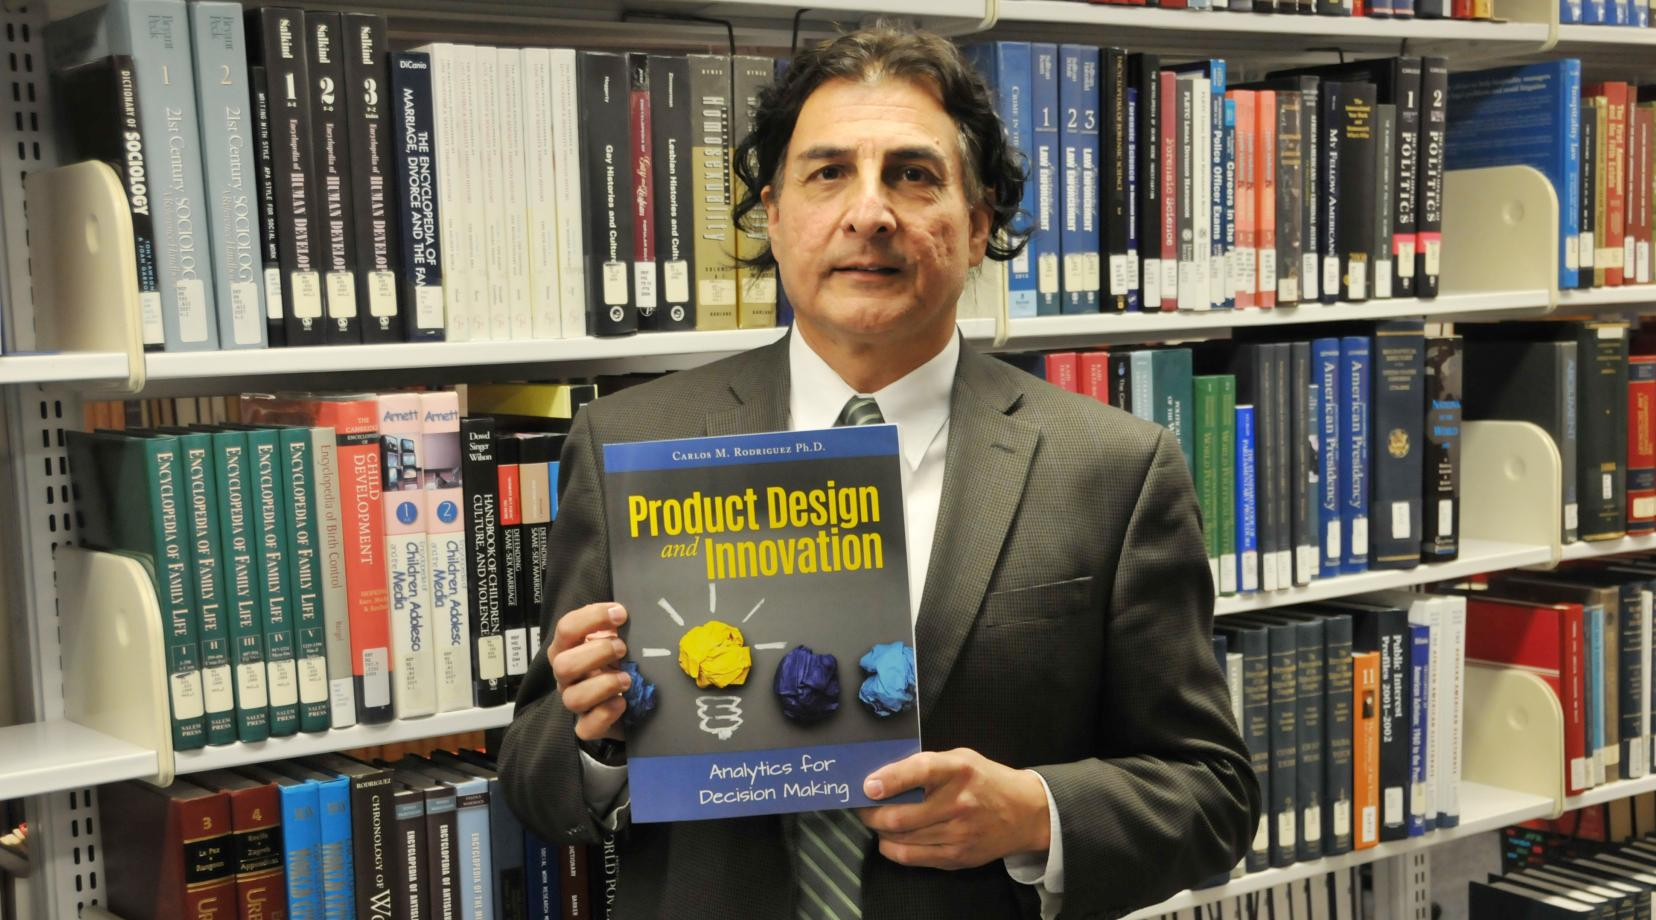 <p>The DSU College of Business&#039; Dr. Carlos Rodriguez has authored a new book on product design and innovation that reflect the intellectual fruits that be expected from the COB&#039;s Center for the Study of Innovative Management, of which he is the director.</p>